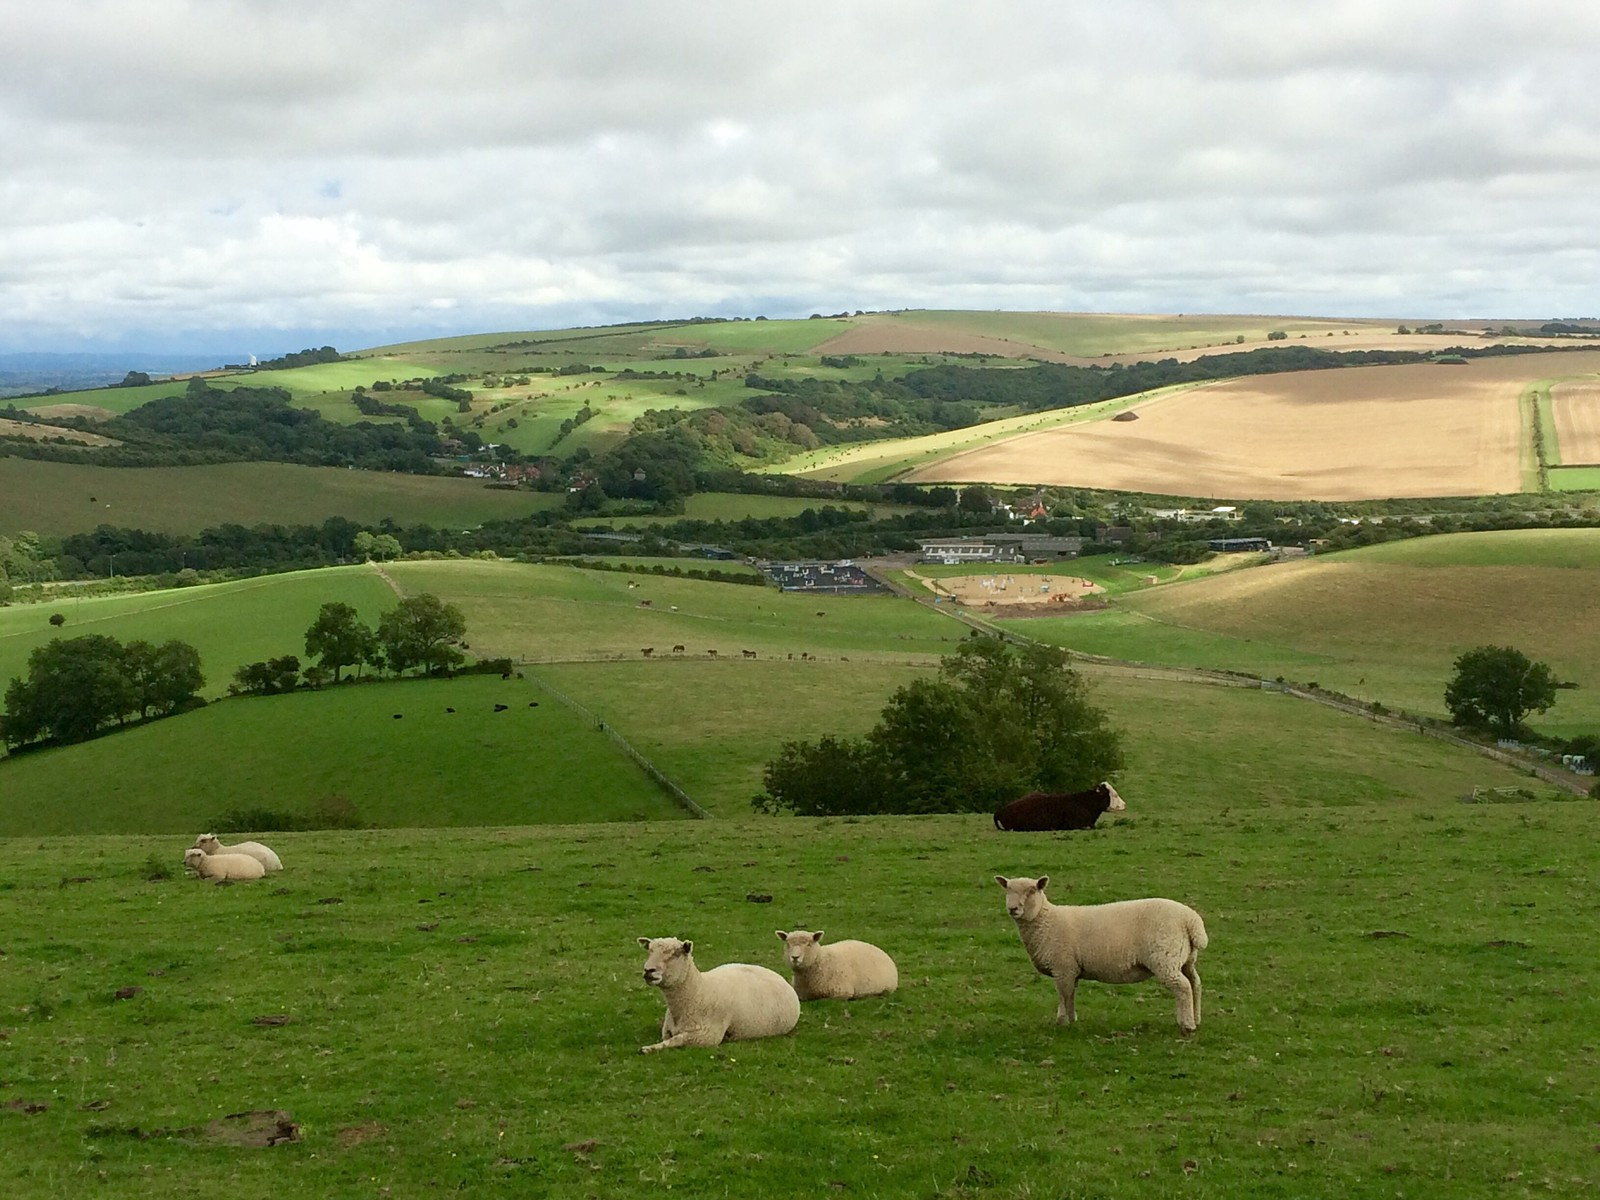 August 23, 2015: Hassocks to Devil's Dyke Sheep on the South Downs